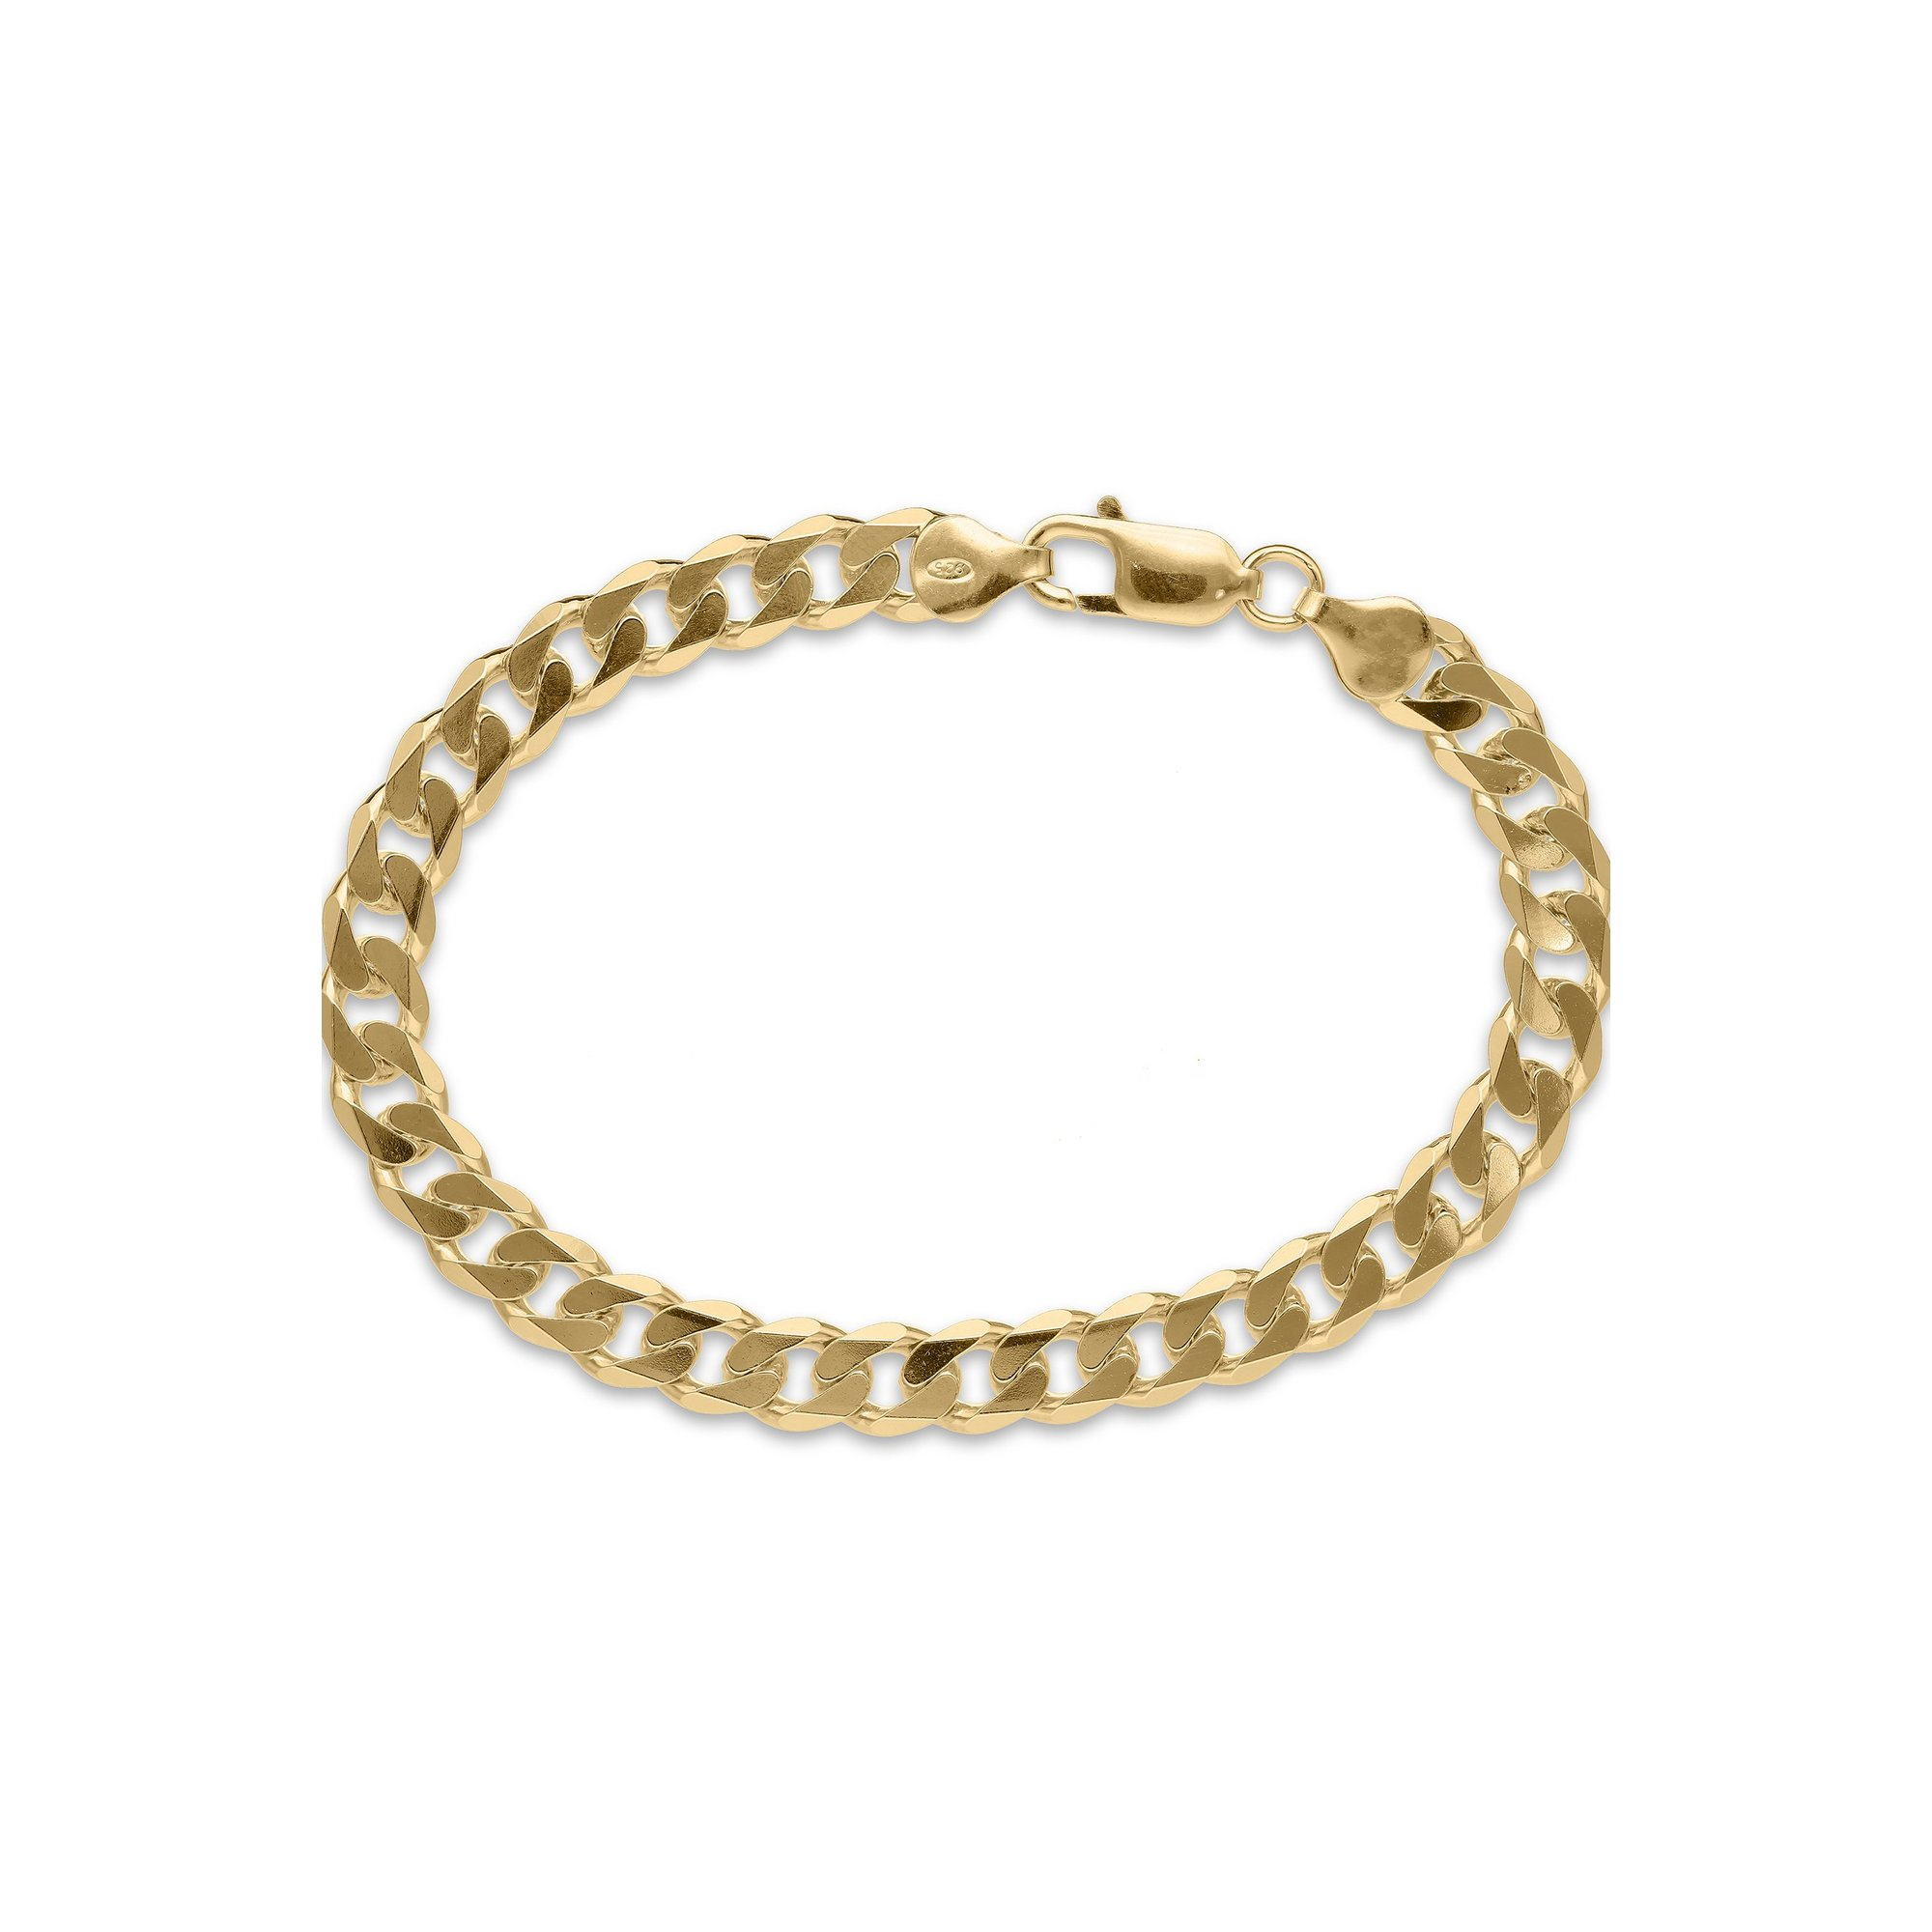 Image of 8 Inch Gold Plated Silver Solid Curb Chain Bracelet